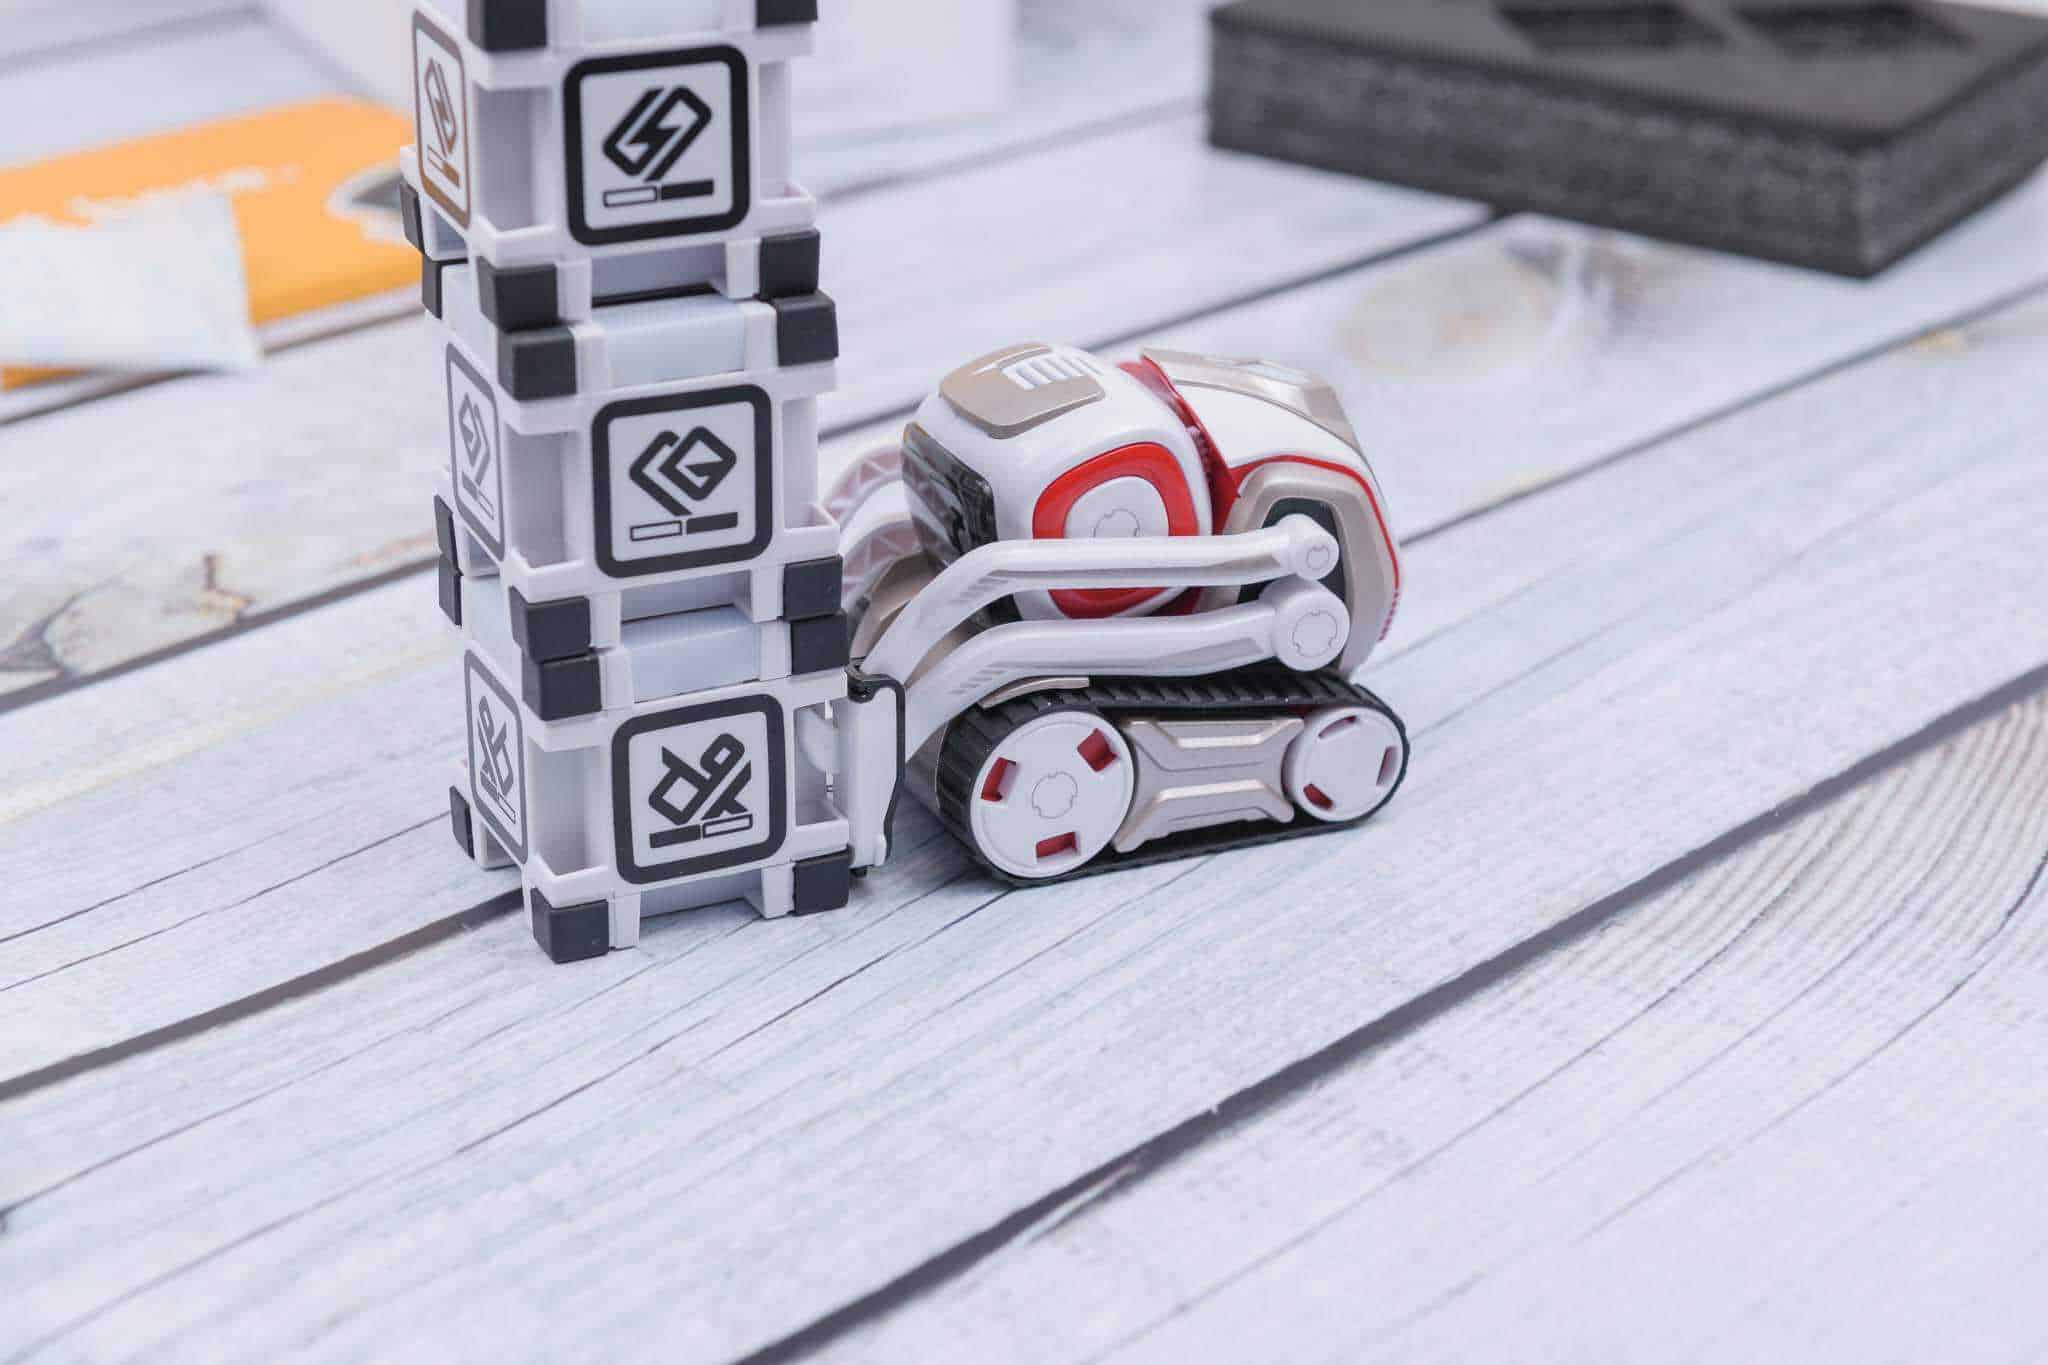 Anki Cozmo Robot Review - Tipping the Cubes over